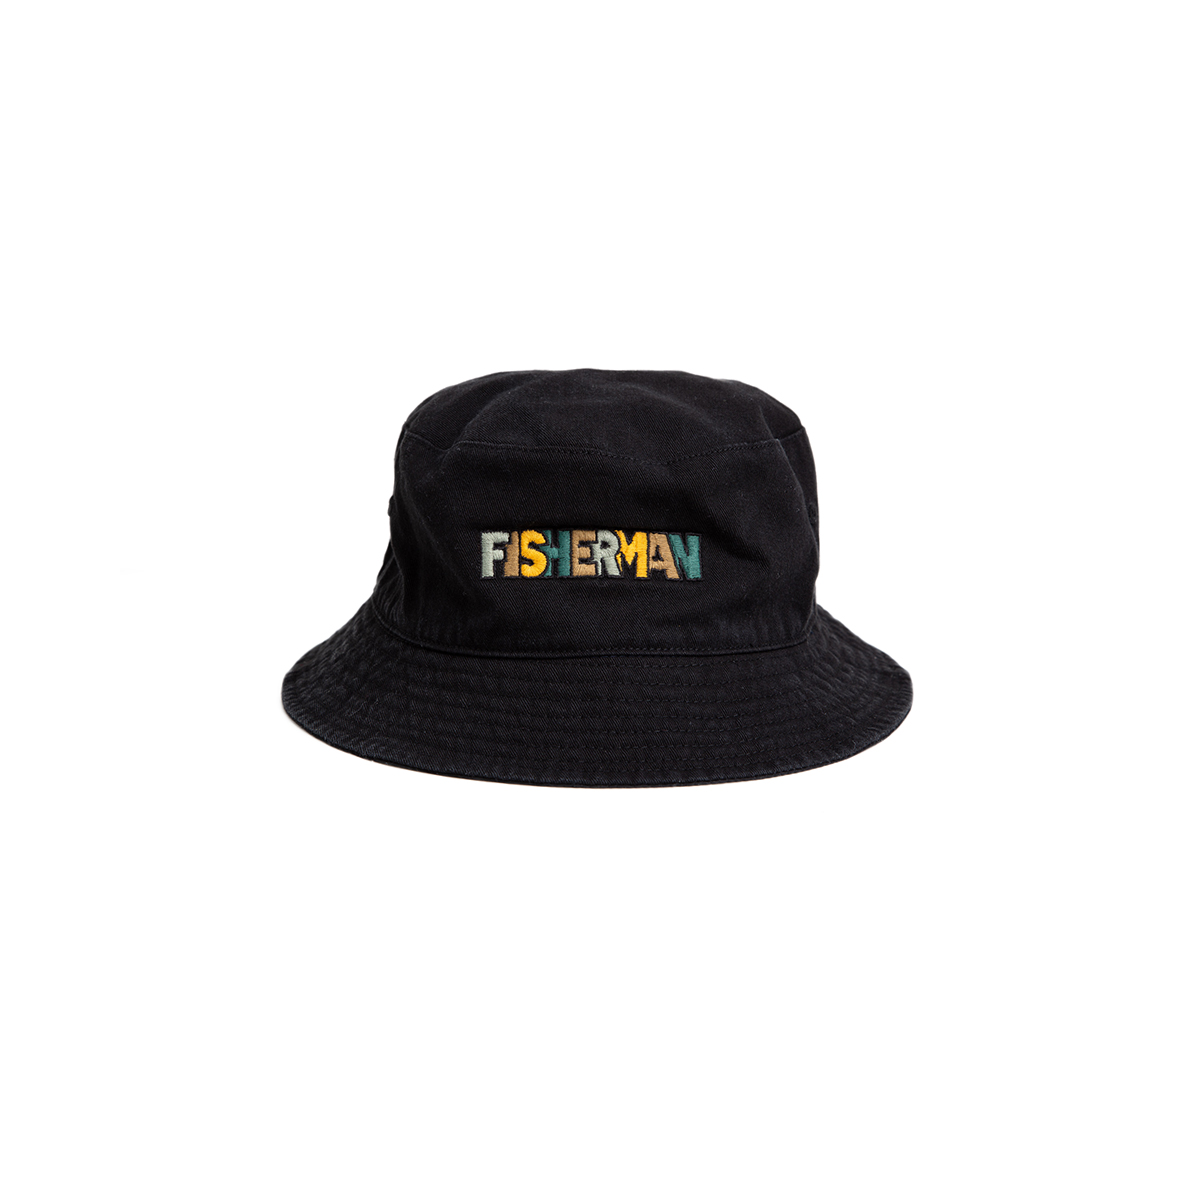 "Reversible Needle Bucket_FISHERMAN ""BLACK""자수가 촘촘히 들어간 버킷"